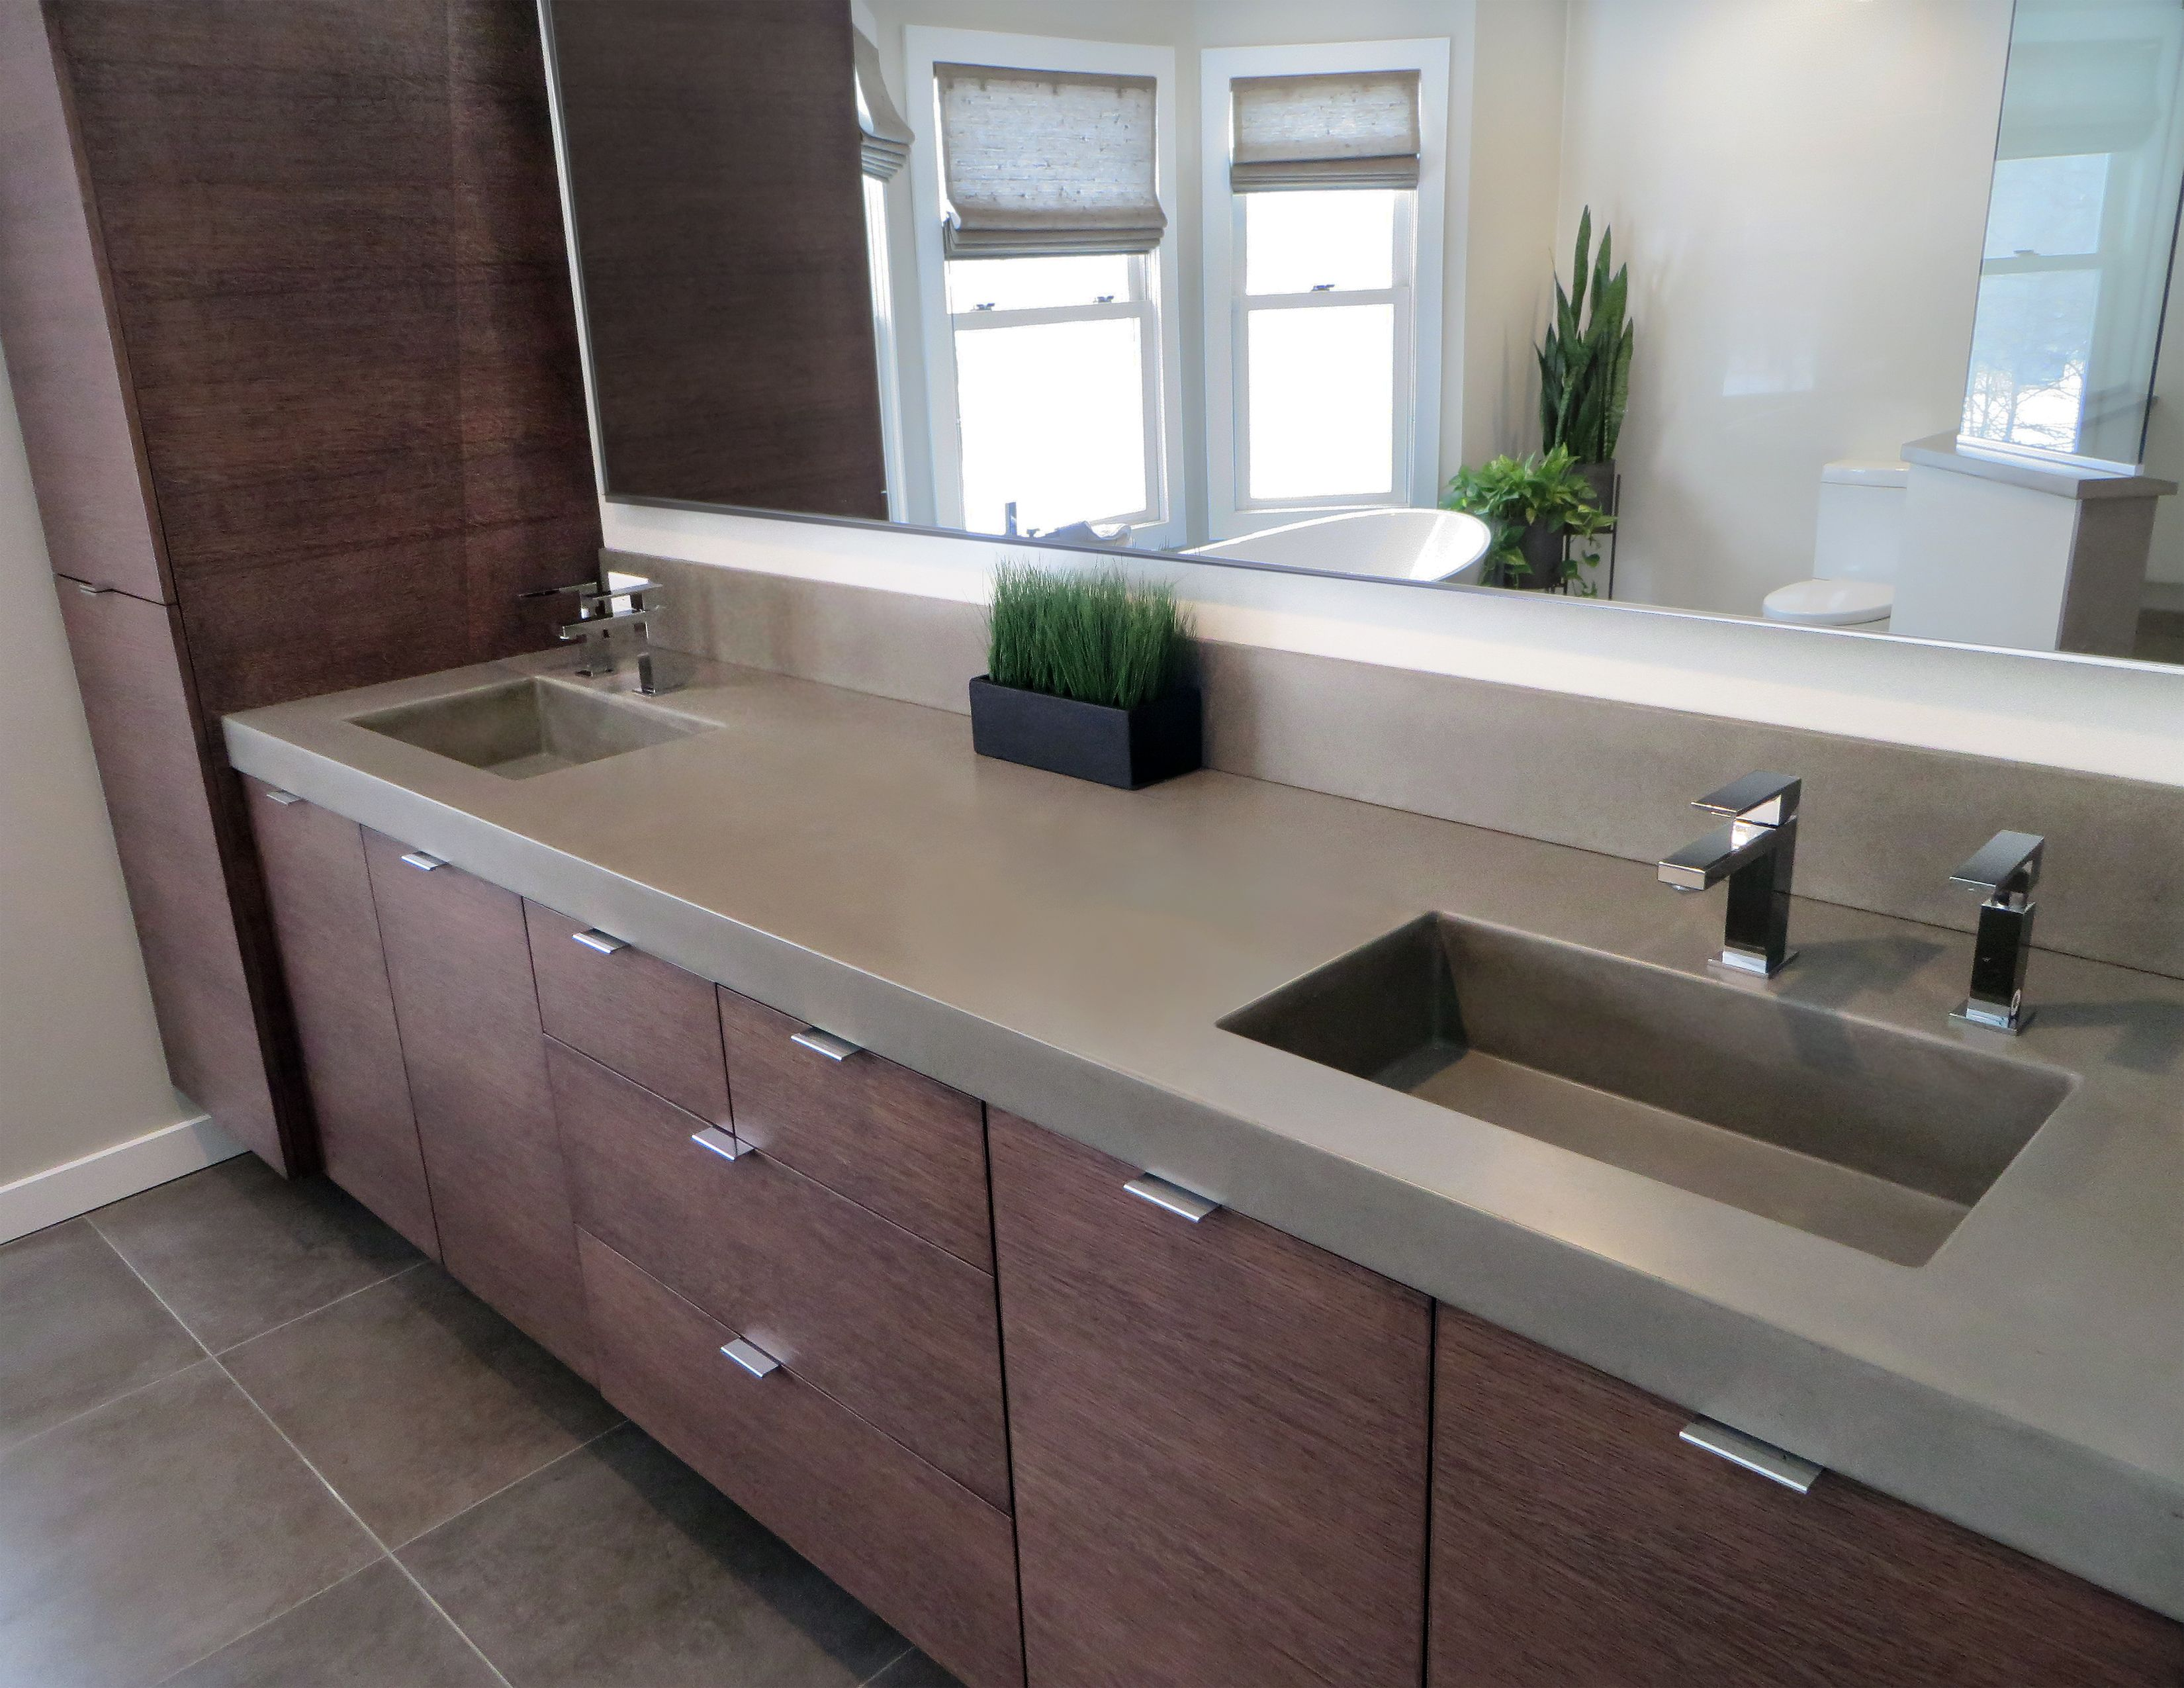 This Is A Contemporary Concrete Bathroom Sink By Trueform Concrete 3 Thick Edge With Double Rectangle Co Blue Bathroom Decor Concrete Bathroom Concrete Sink